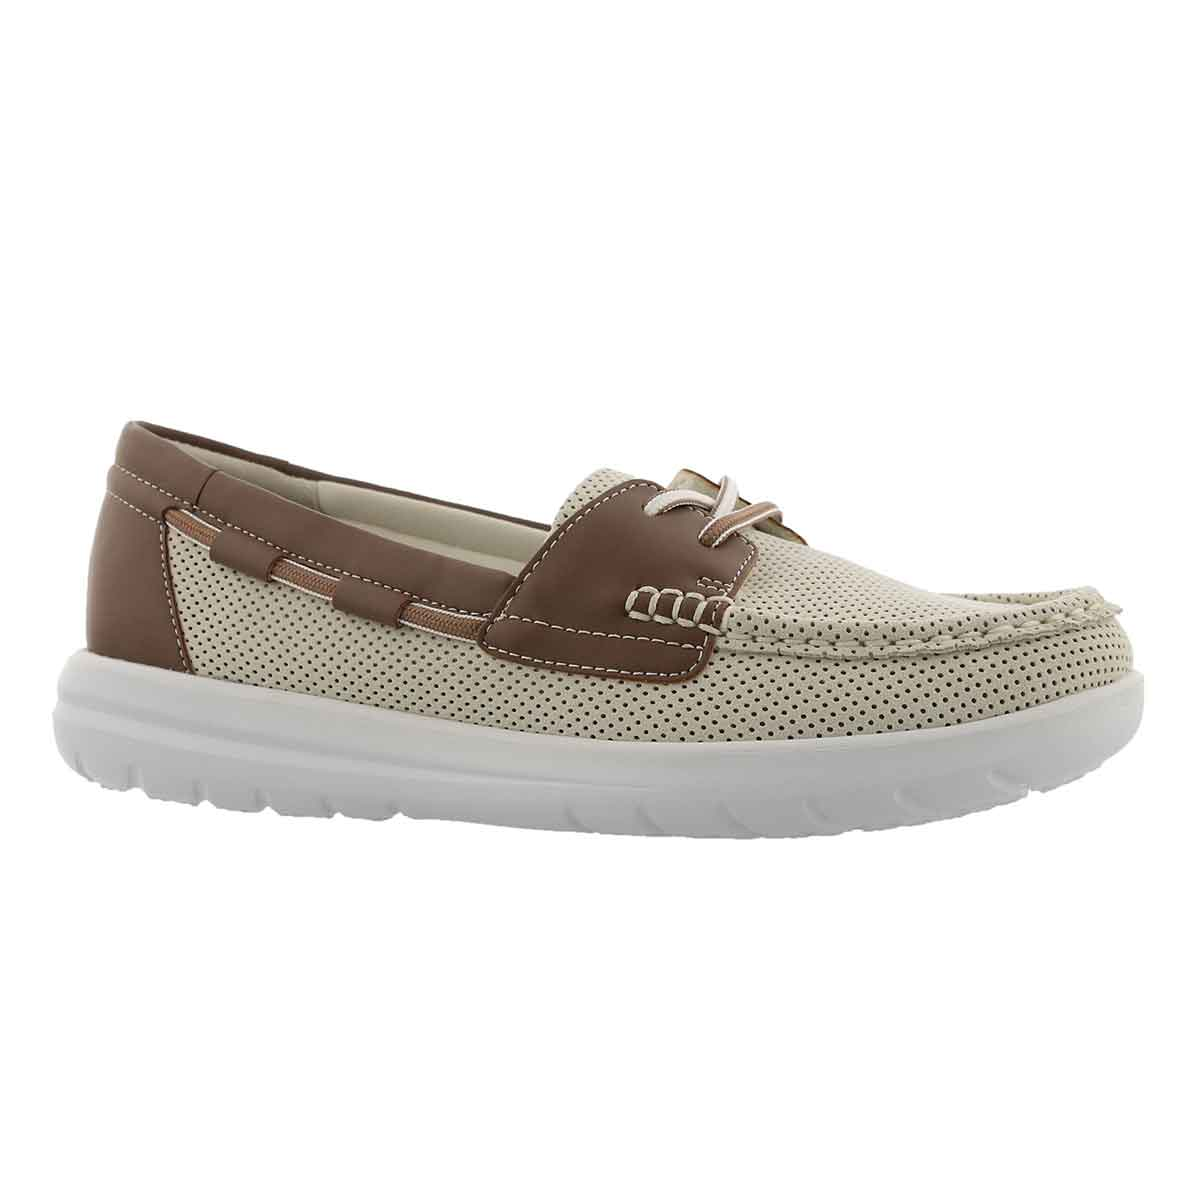 Women's JOCOLIN VISTA off white boat shoes